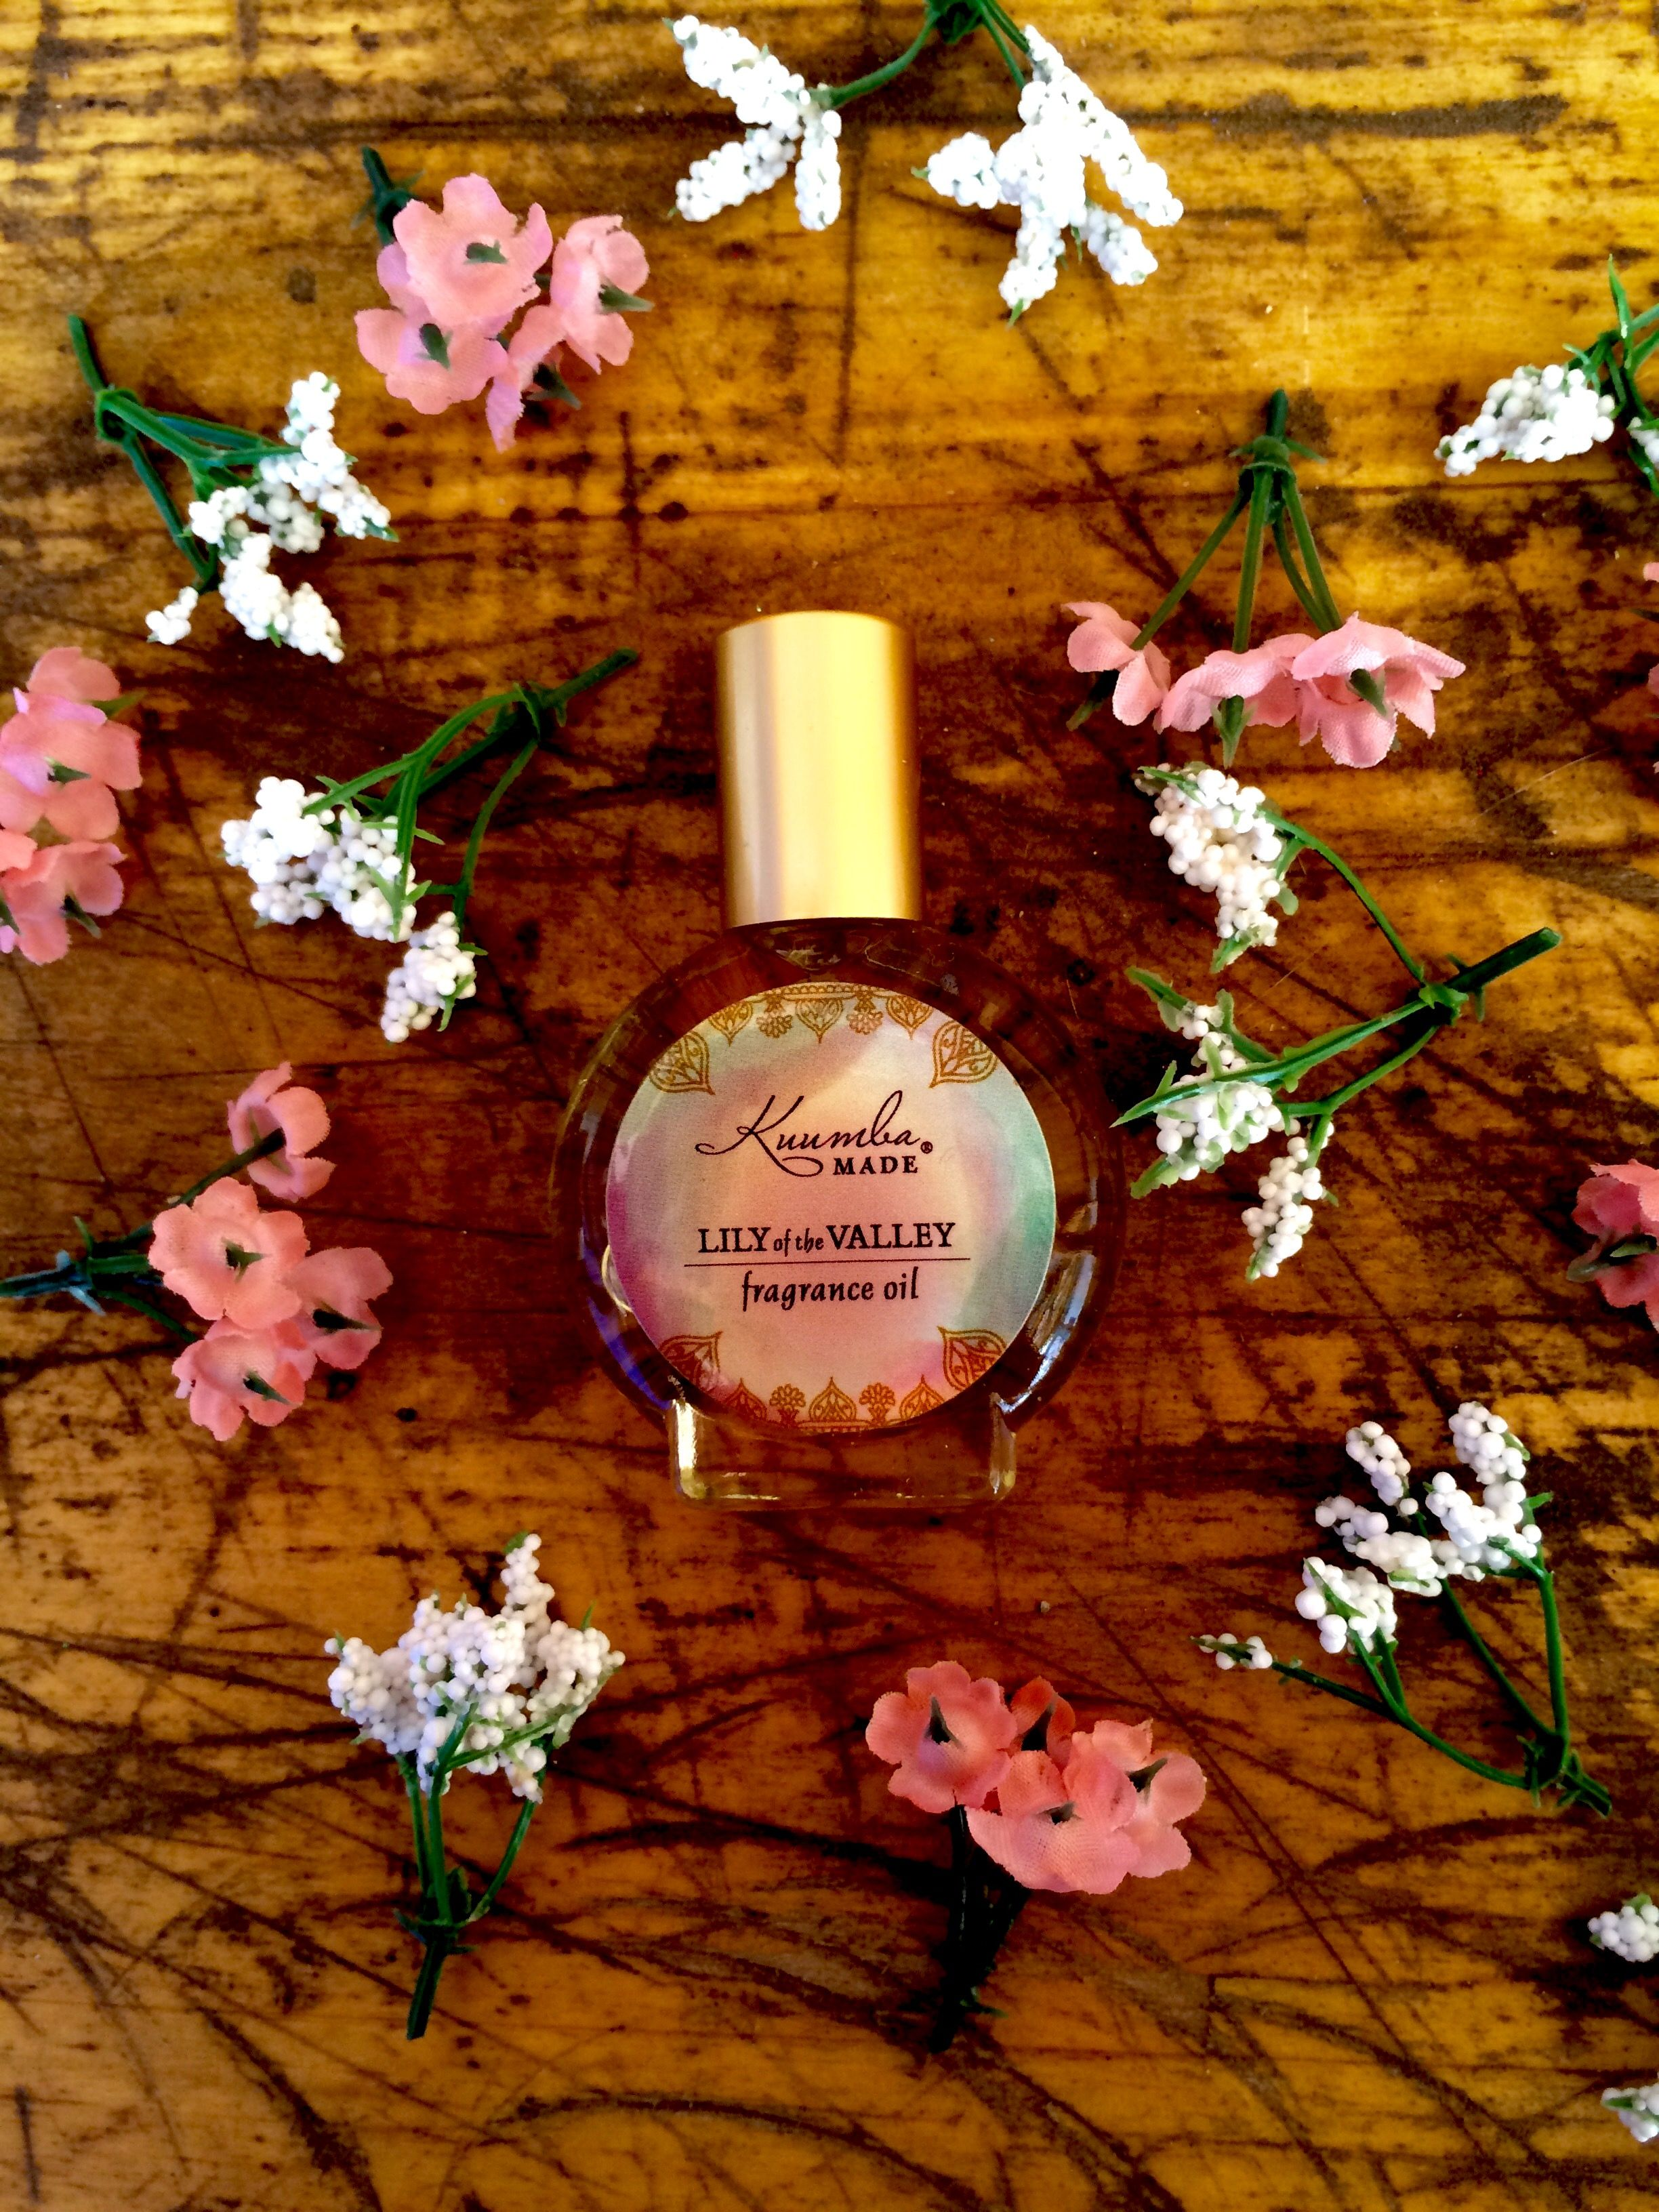 Folklore Tells Us That The Rapturous Scent Of This Flower Draws The Nightingale To His Mate Fresh And Floral Green Botanical Fragrance Kuumba Made Fragrance